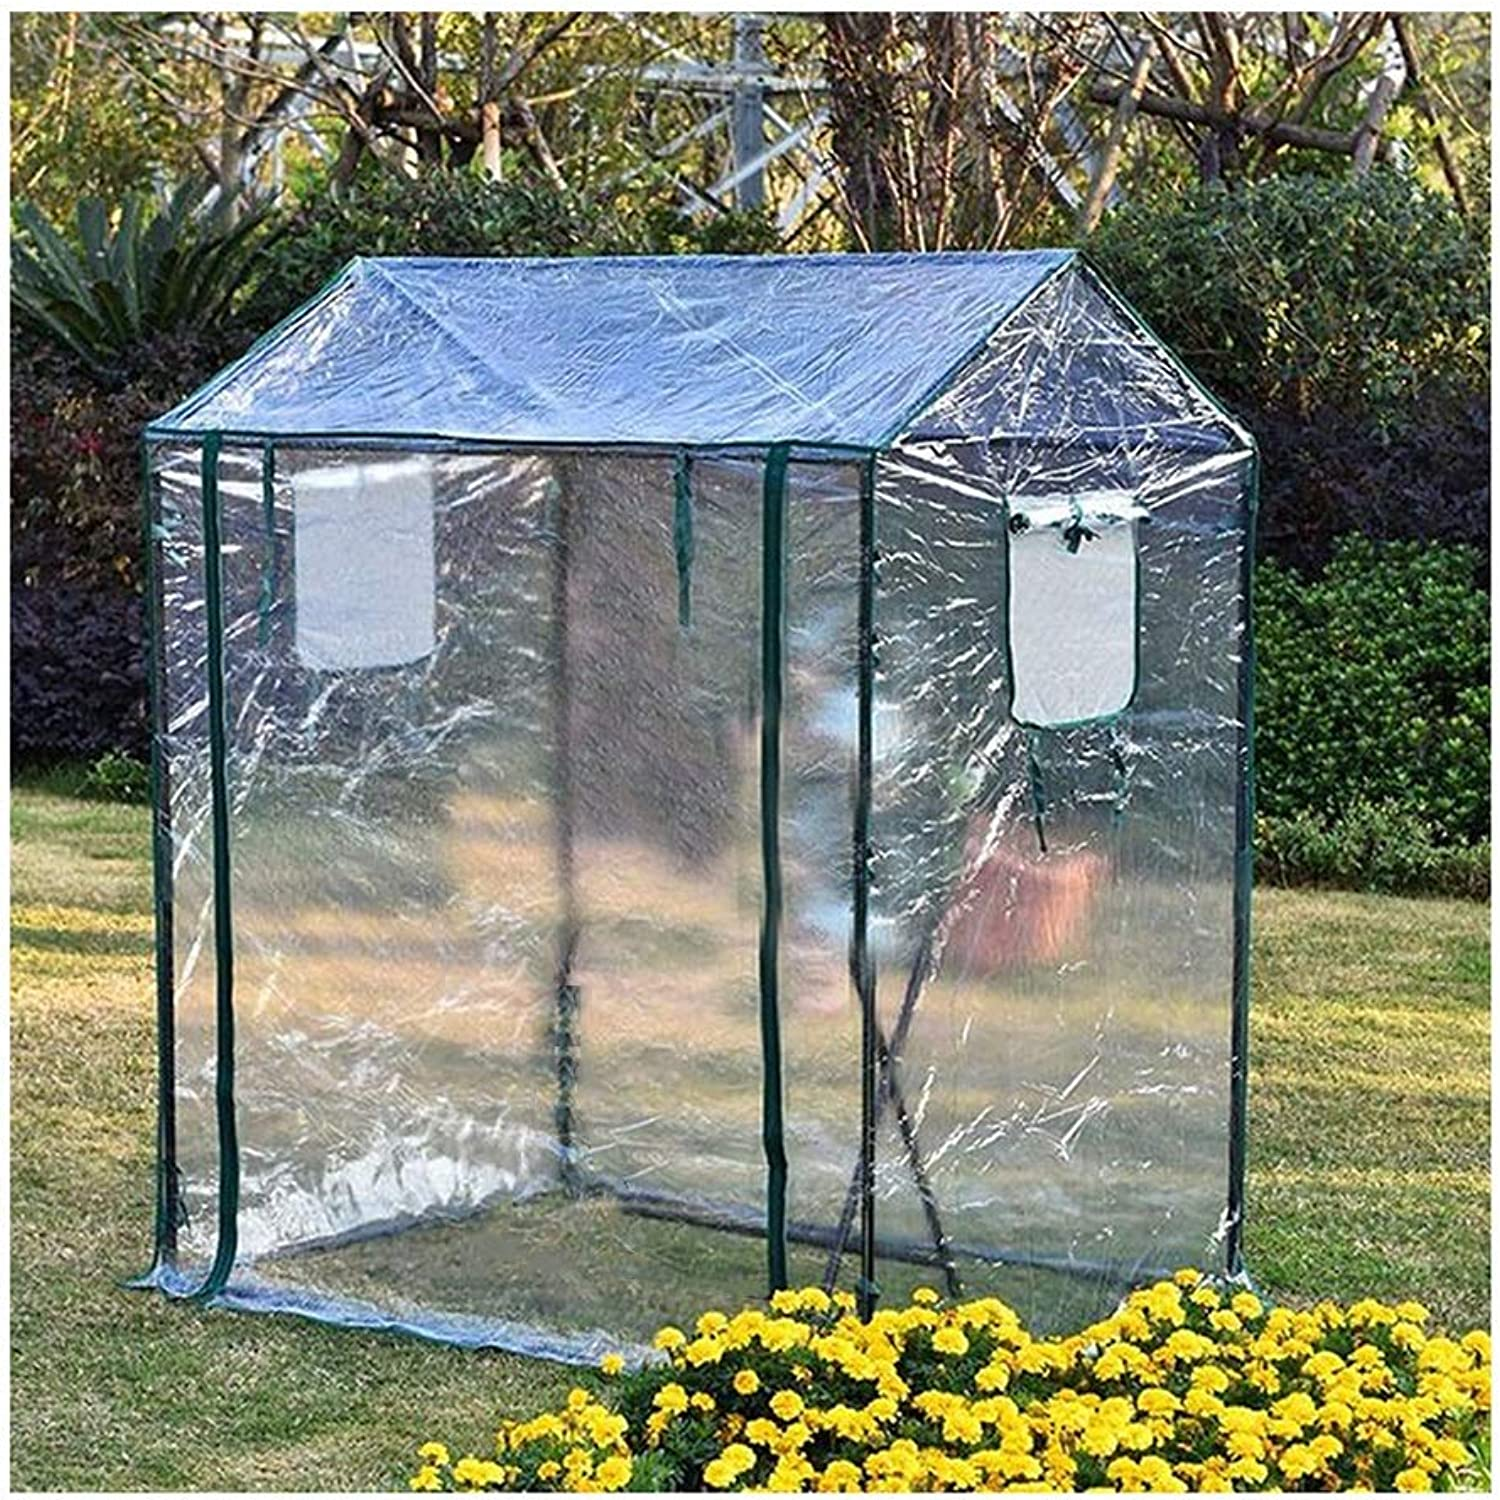 LIANGLIANGGreenhouses Growhouse Walkin Garden Plant Flower House Heat Cover Cover Durable Windproof Rainproof (color   Clear, Size   125x85x150cm)